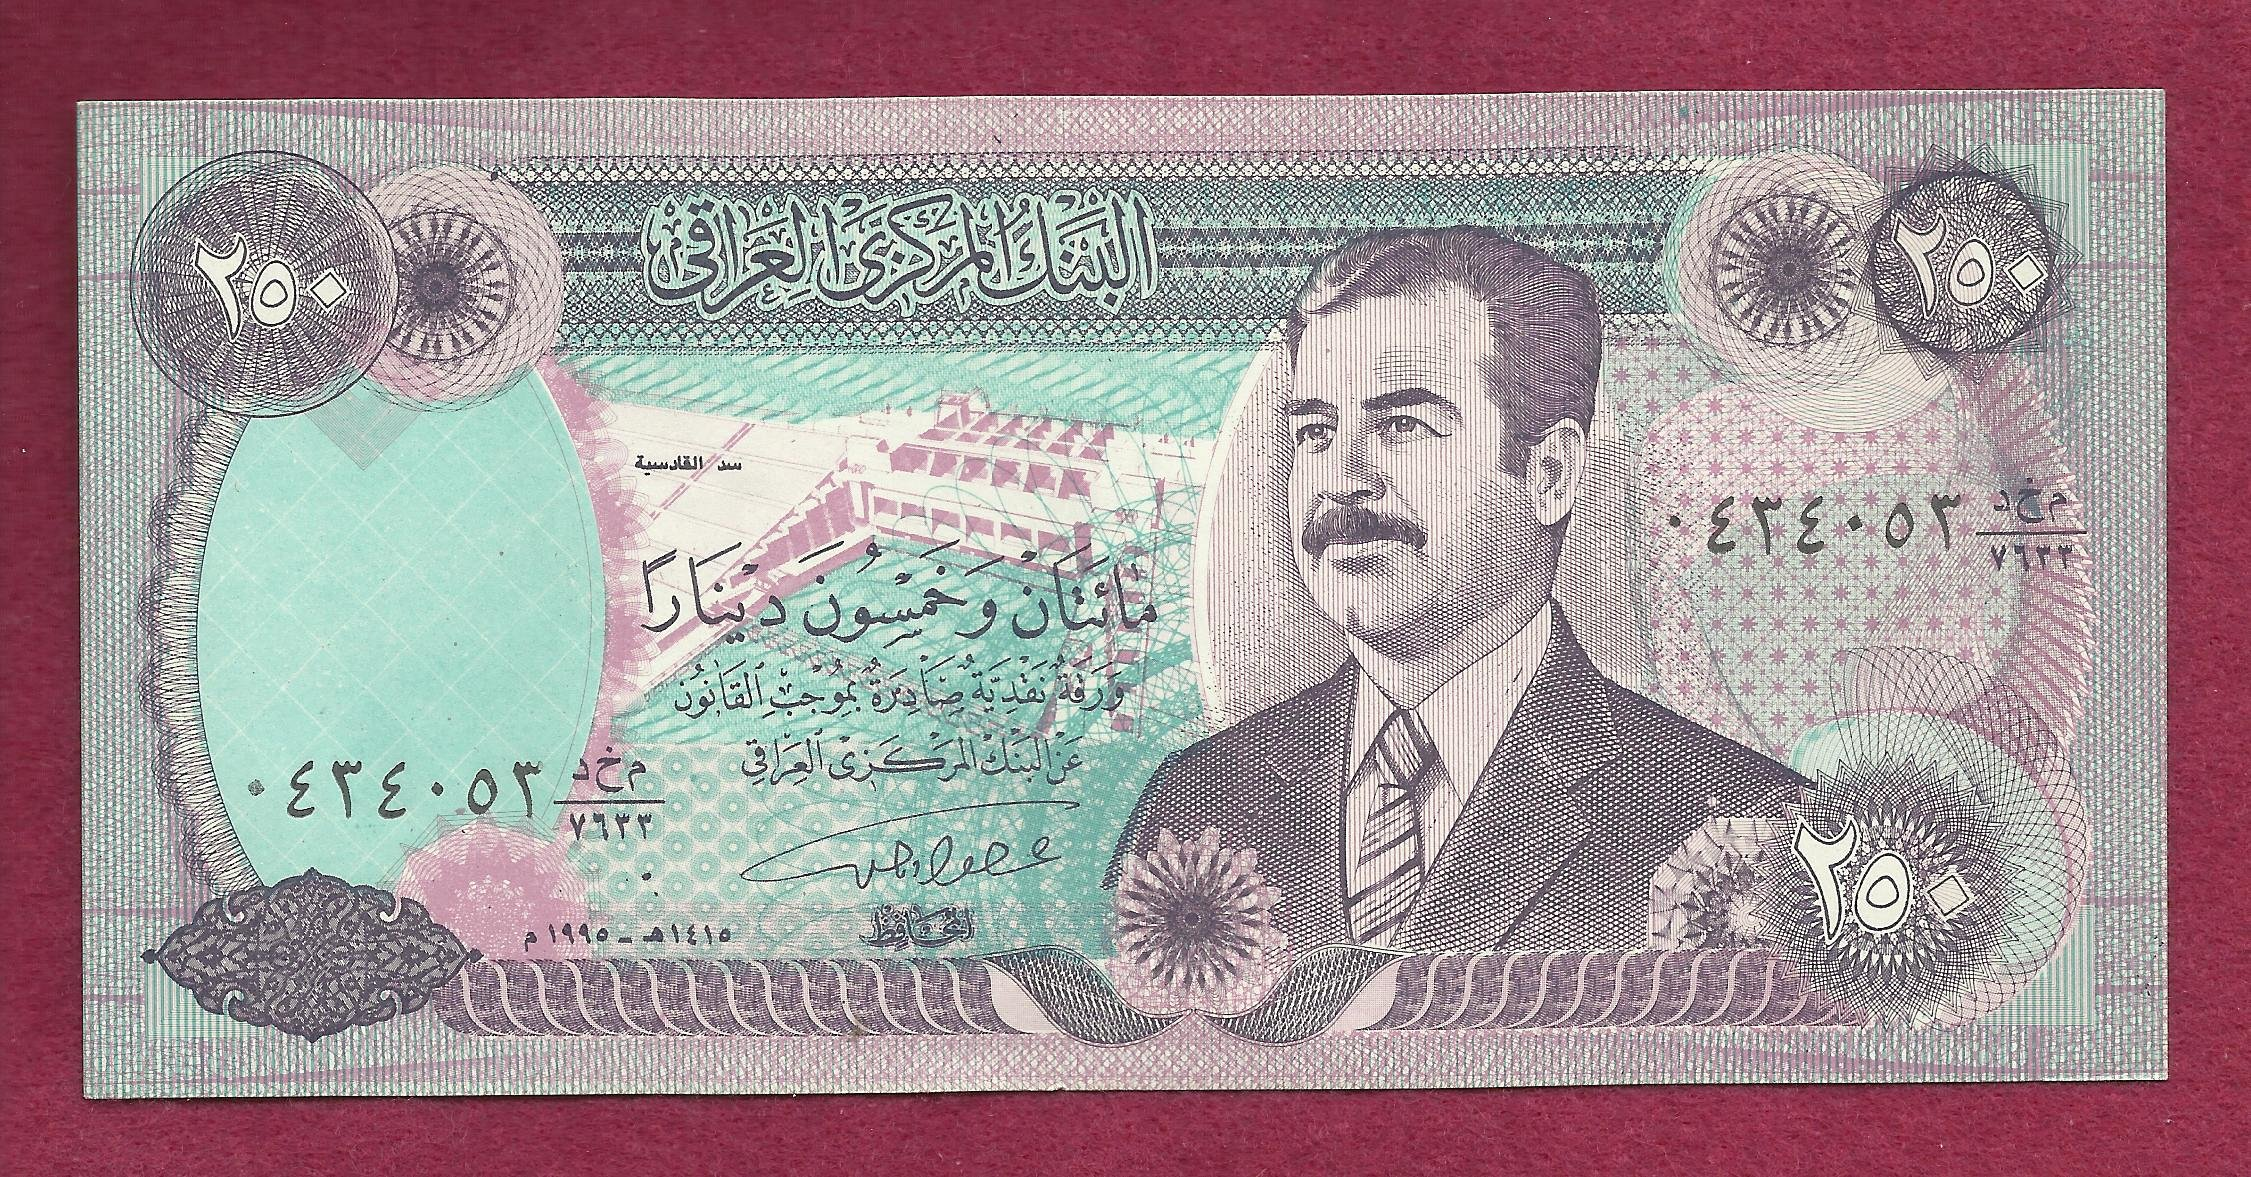 Iraq 250 Dinars Banknote Rare Saddam Hussein Desert Storm Central Bank Unc Note For Item 1751799